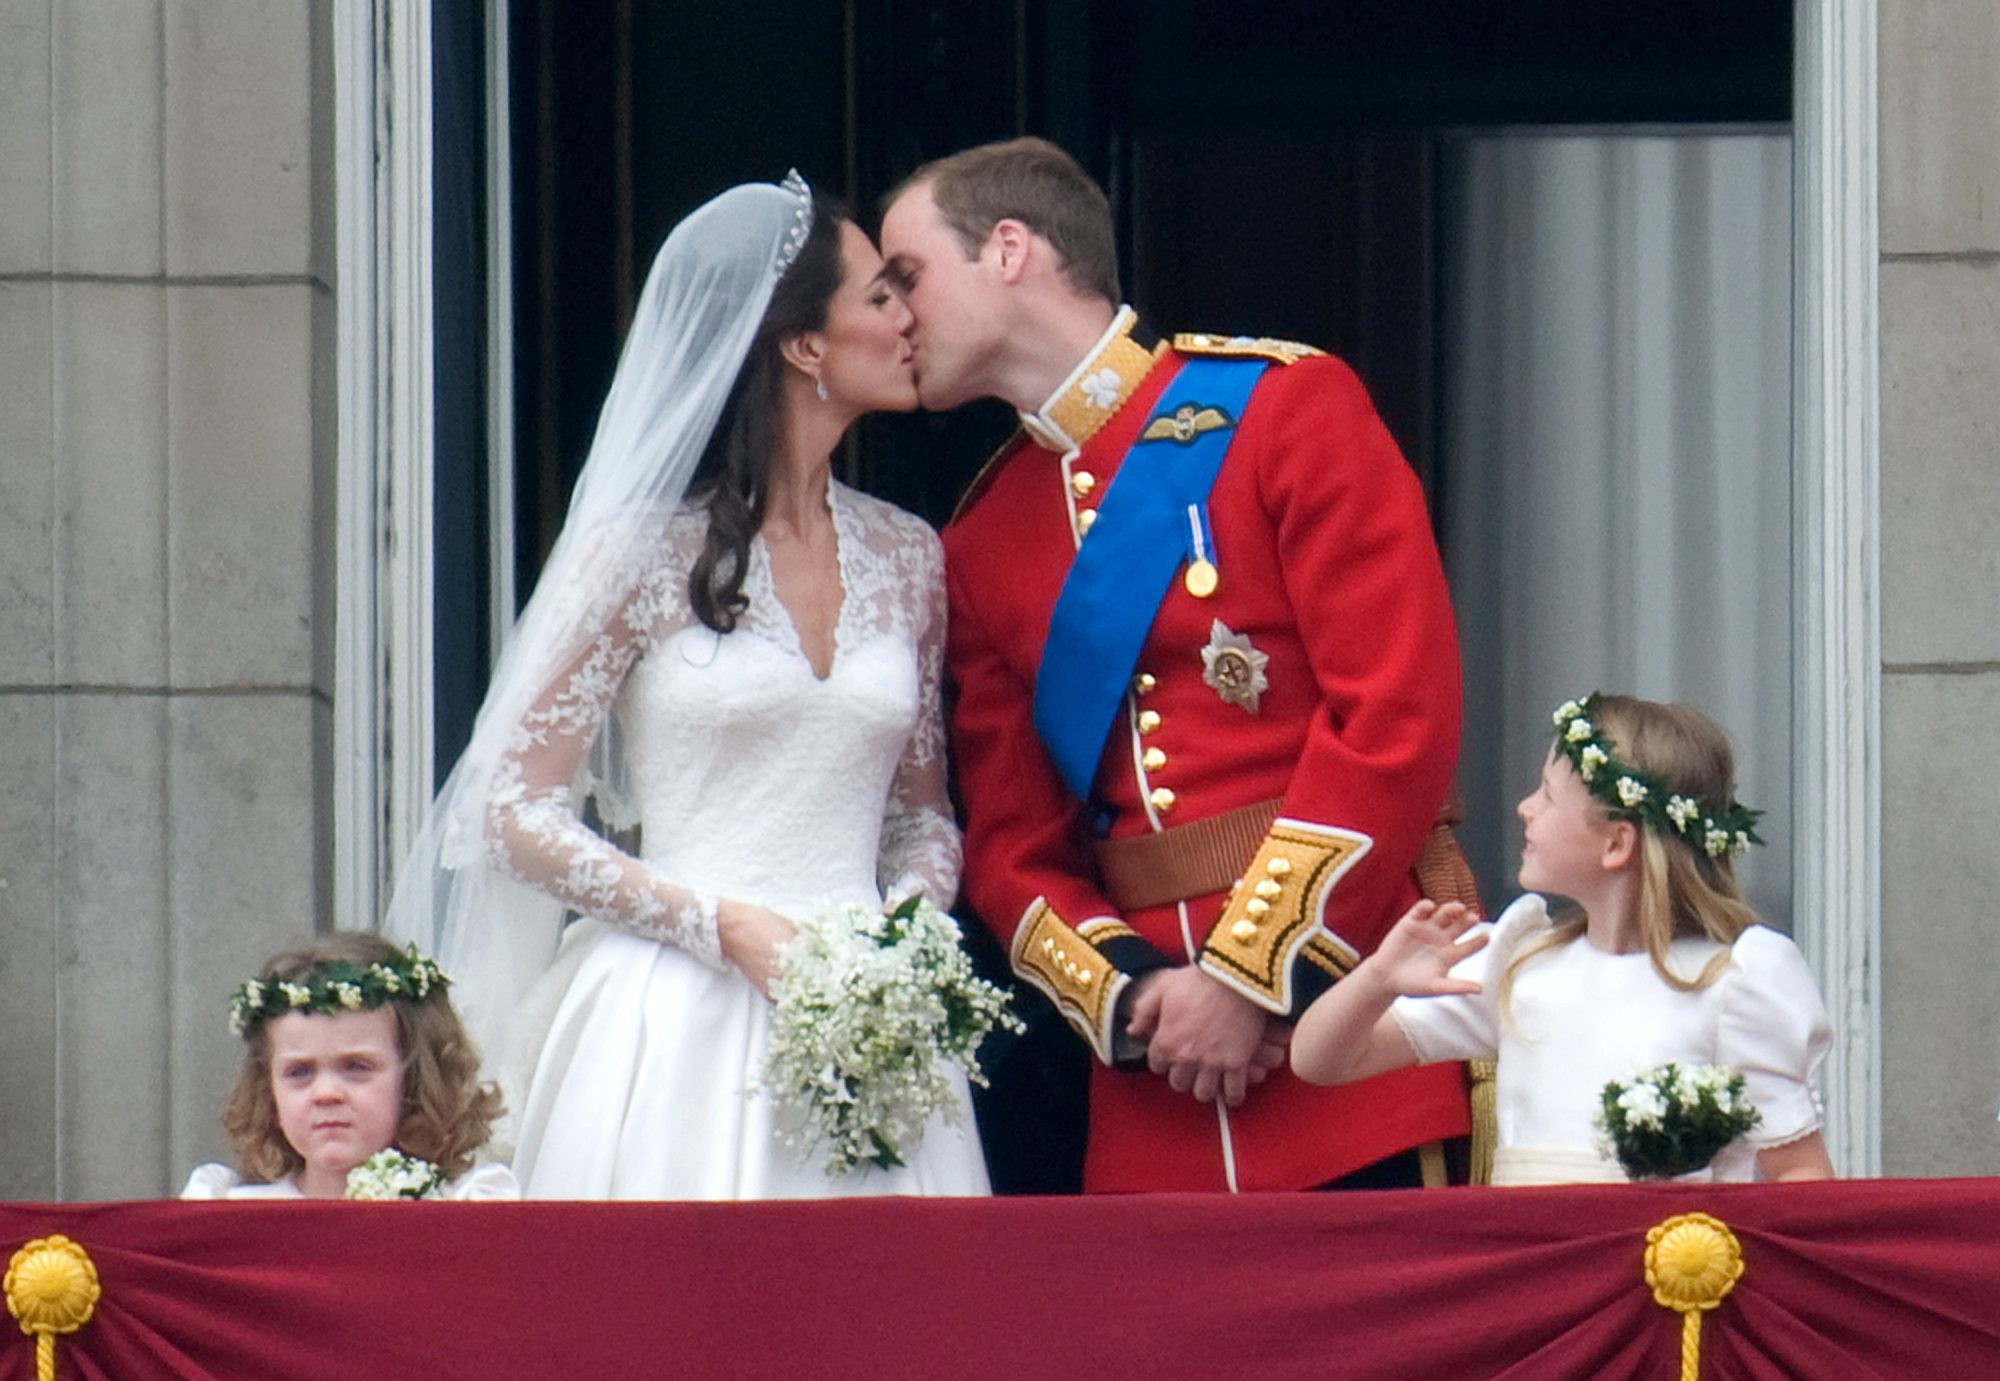 Wedding Bouquet: The Duchess of Cambridge, Kate Middleton